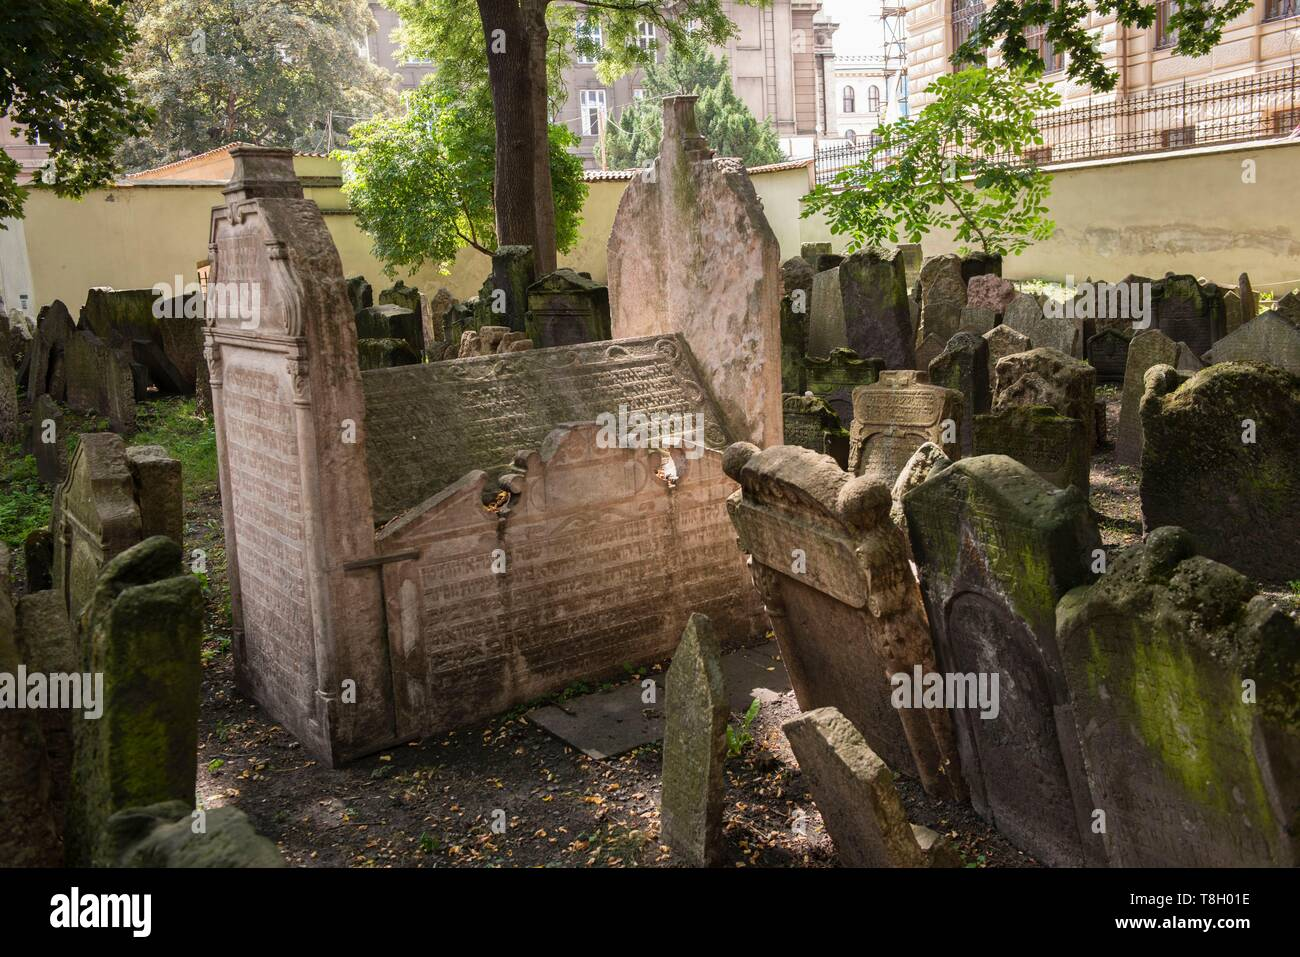 Czech Republic, Praha, listed as World Heritage by UNESCO, Jewish Quarter of Josefov, graves in the jewish cemetery - Stock Image